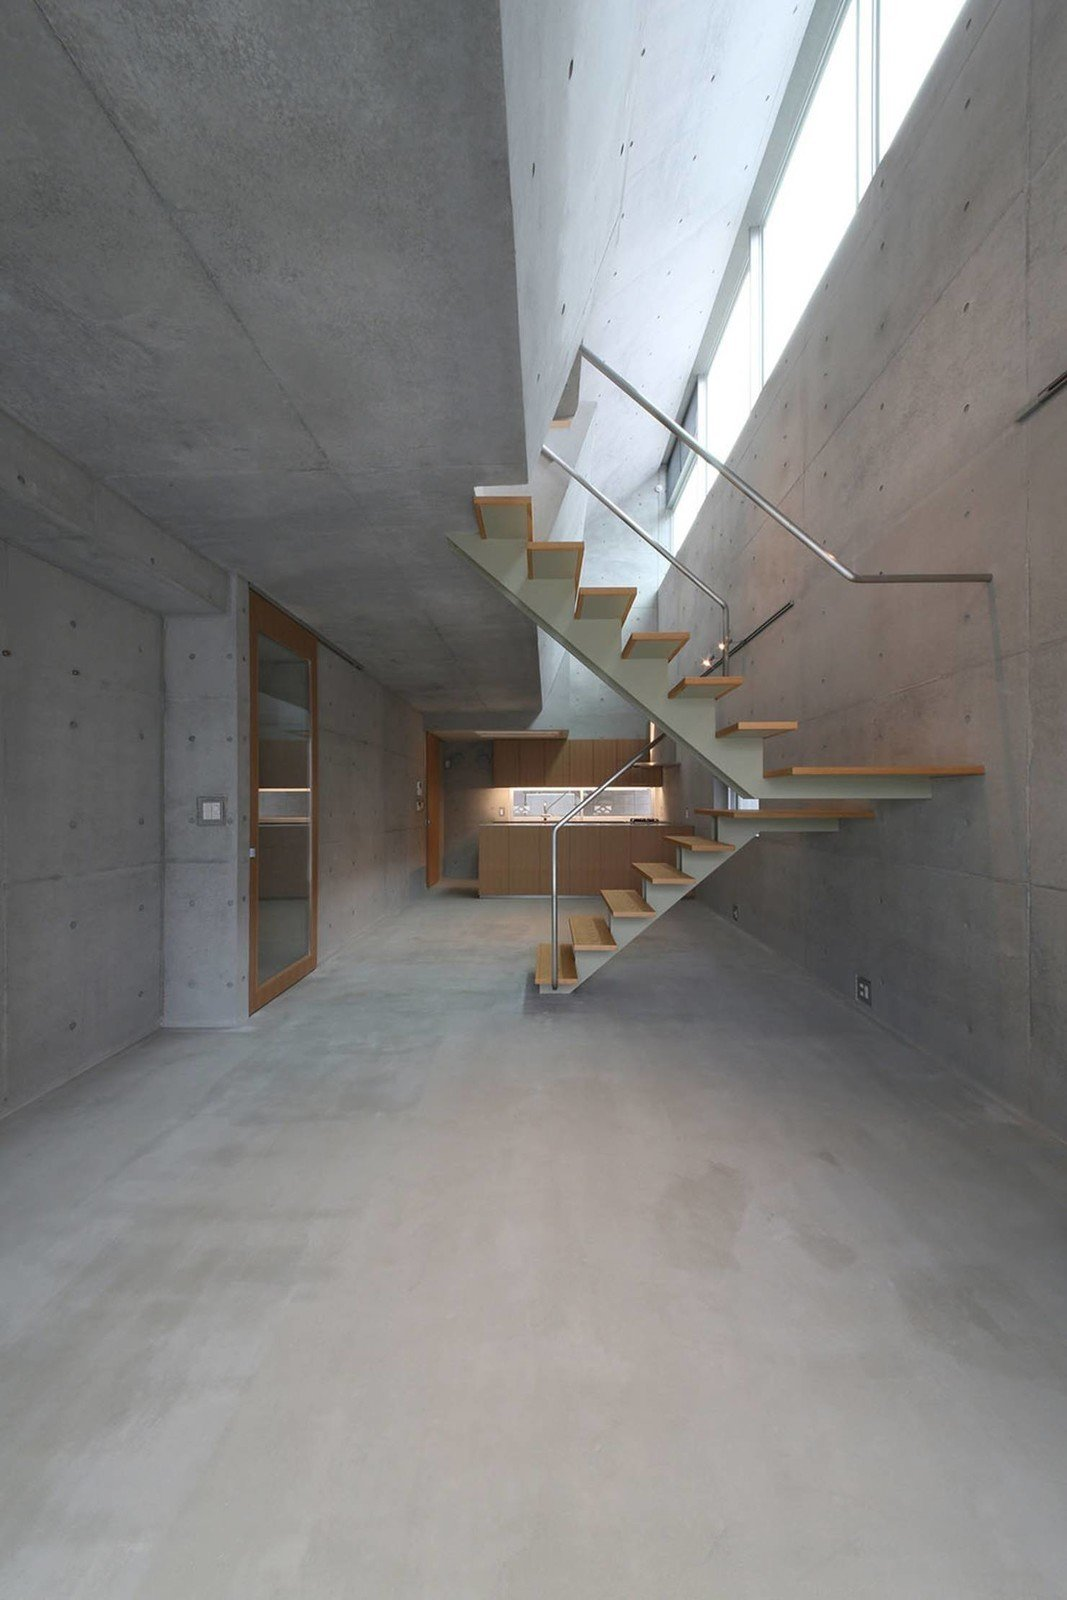 The interior consists entirely of exposed concrete accented by wood. The ground floor features double-height ceilings that maximize natural light from the light wells above.